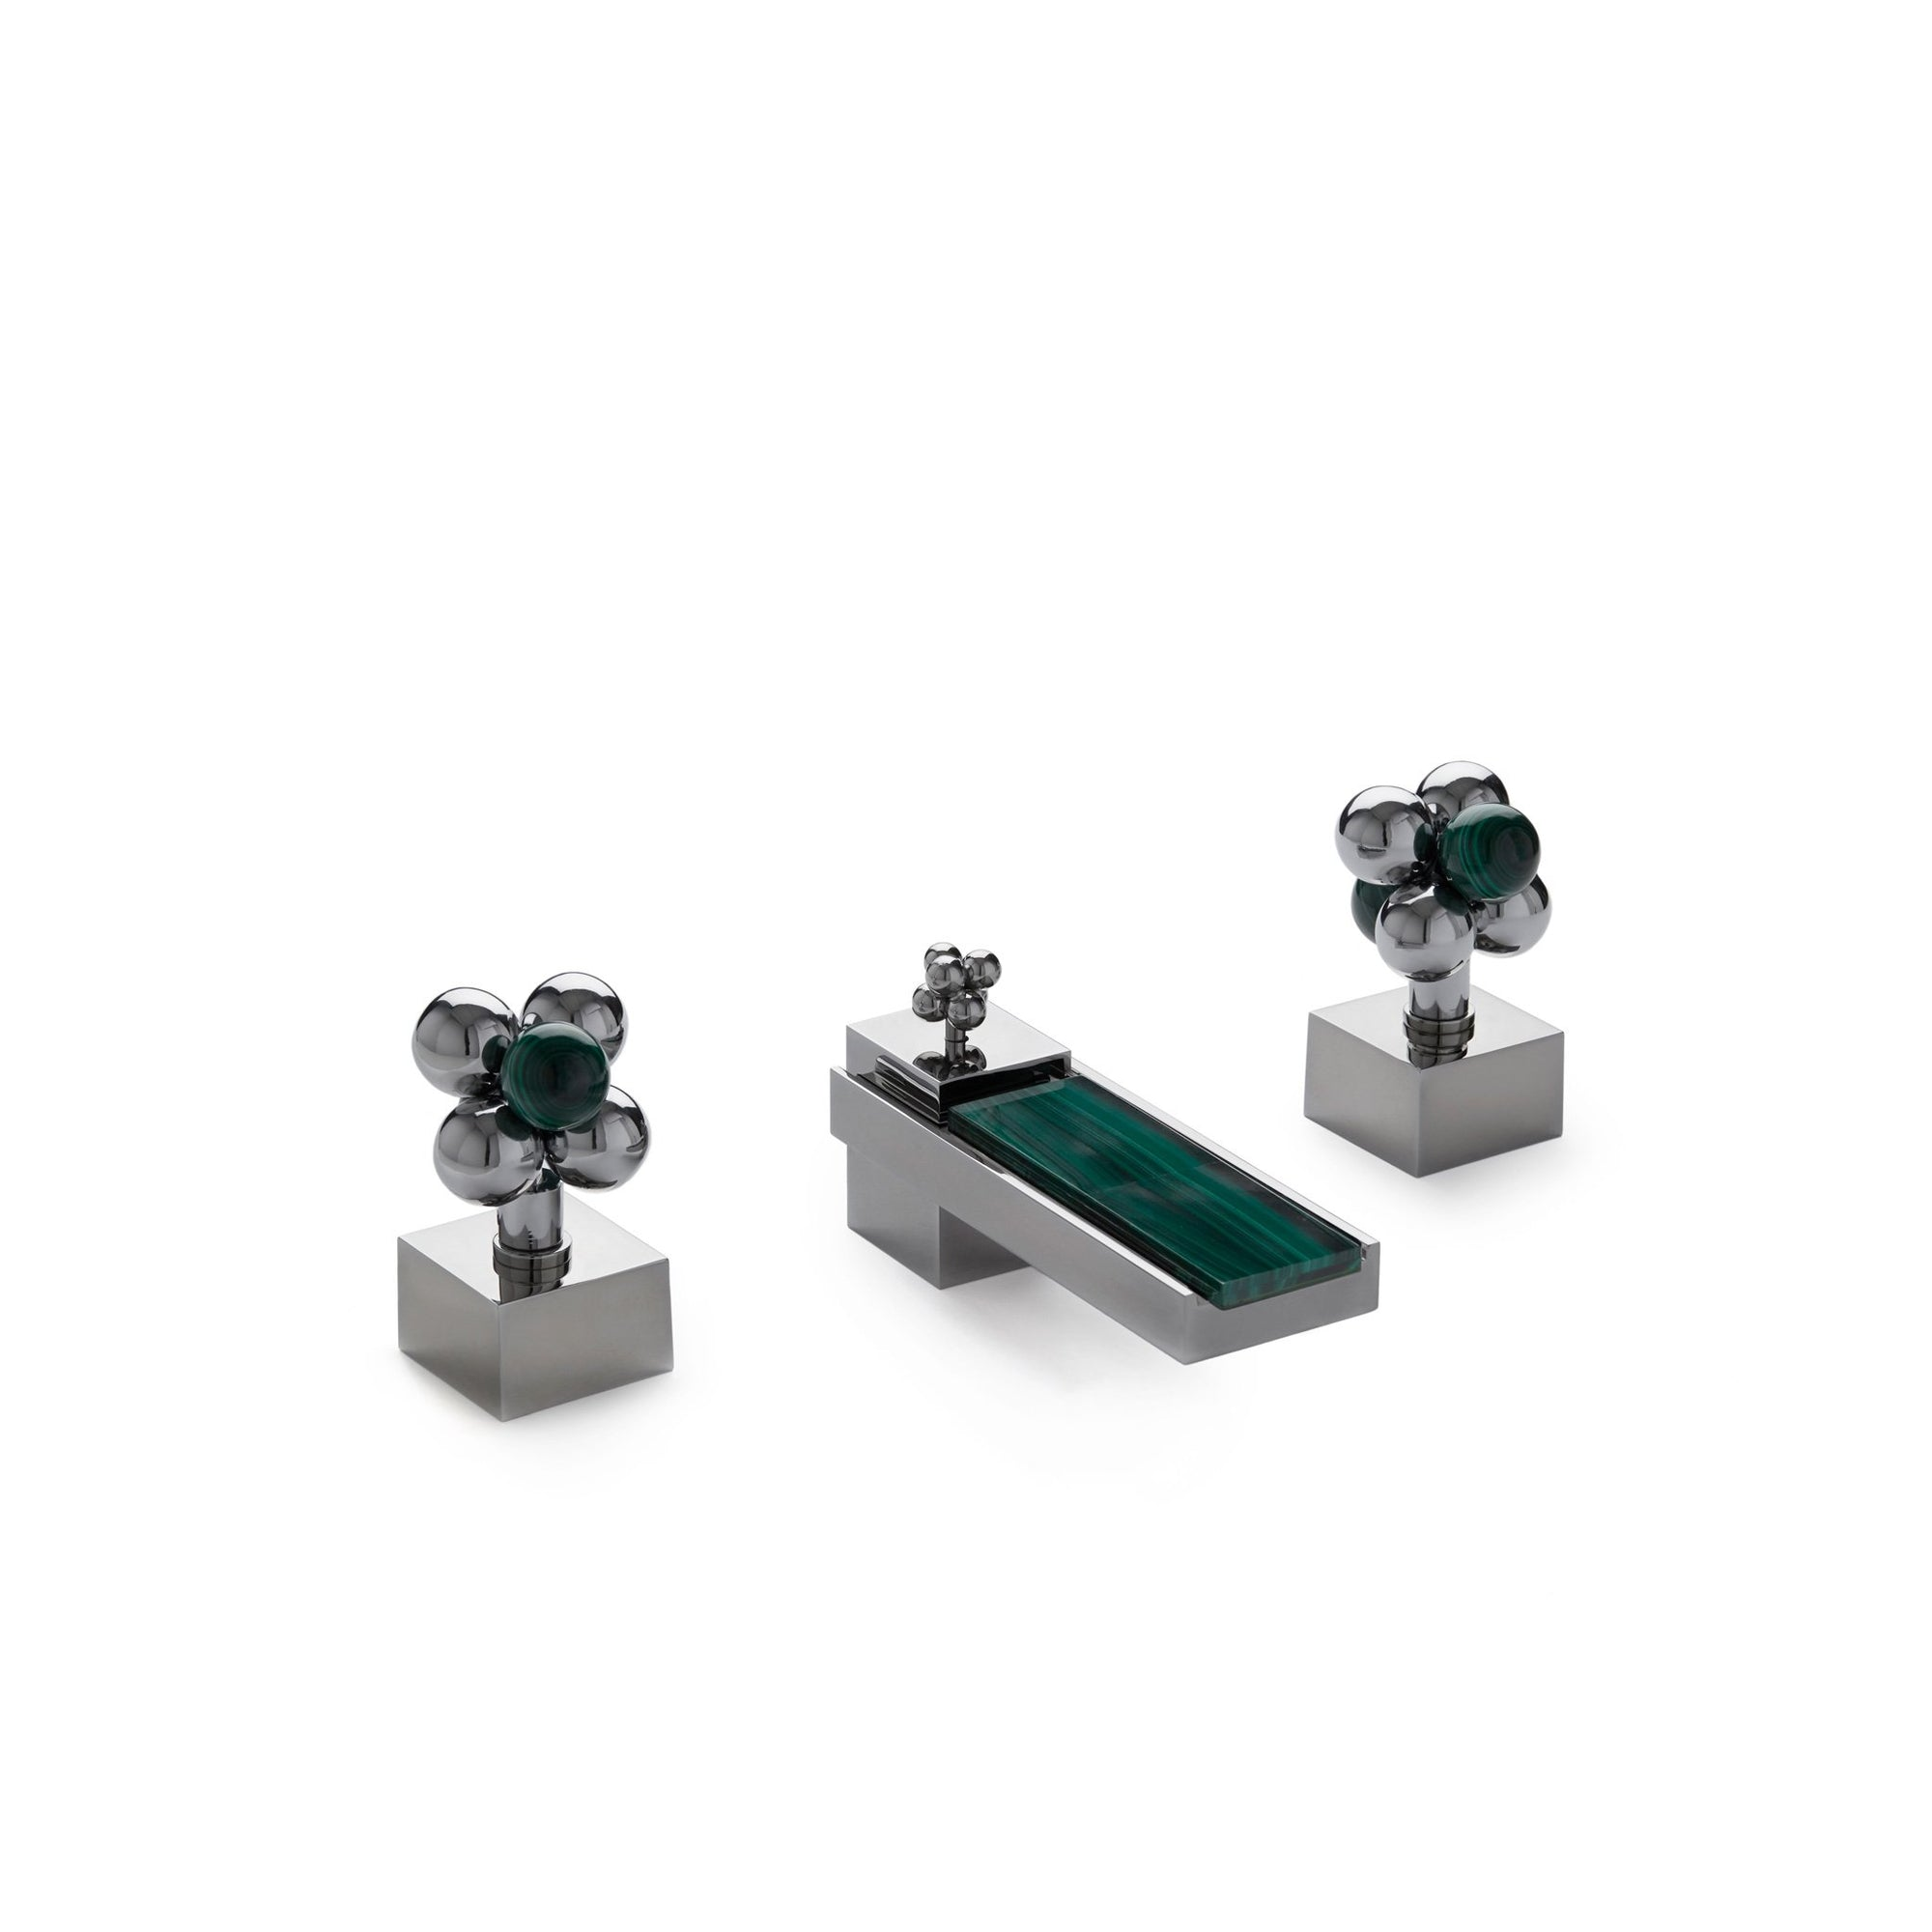 2106BSN102-MALA-CP Sherle Wagner International Apollo with Molecule Knob Faucet Set with Semiprecious Malachite inserts in Polished Chrome metal finish